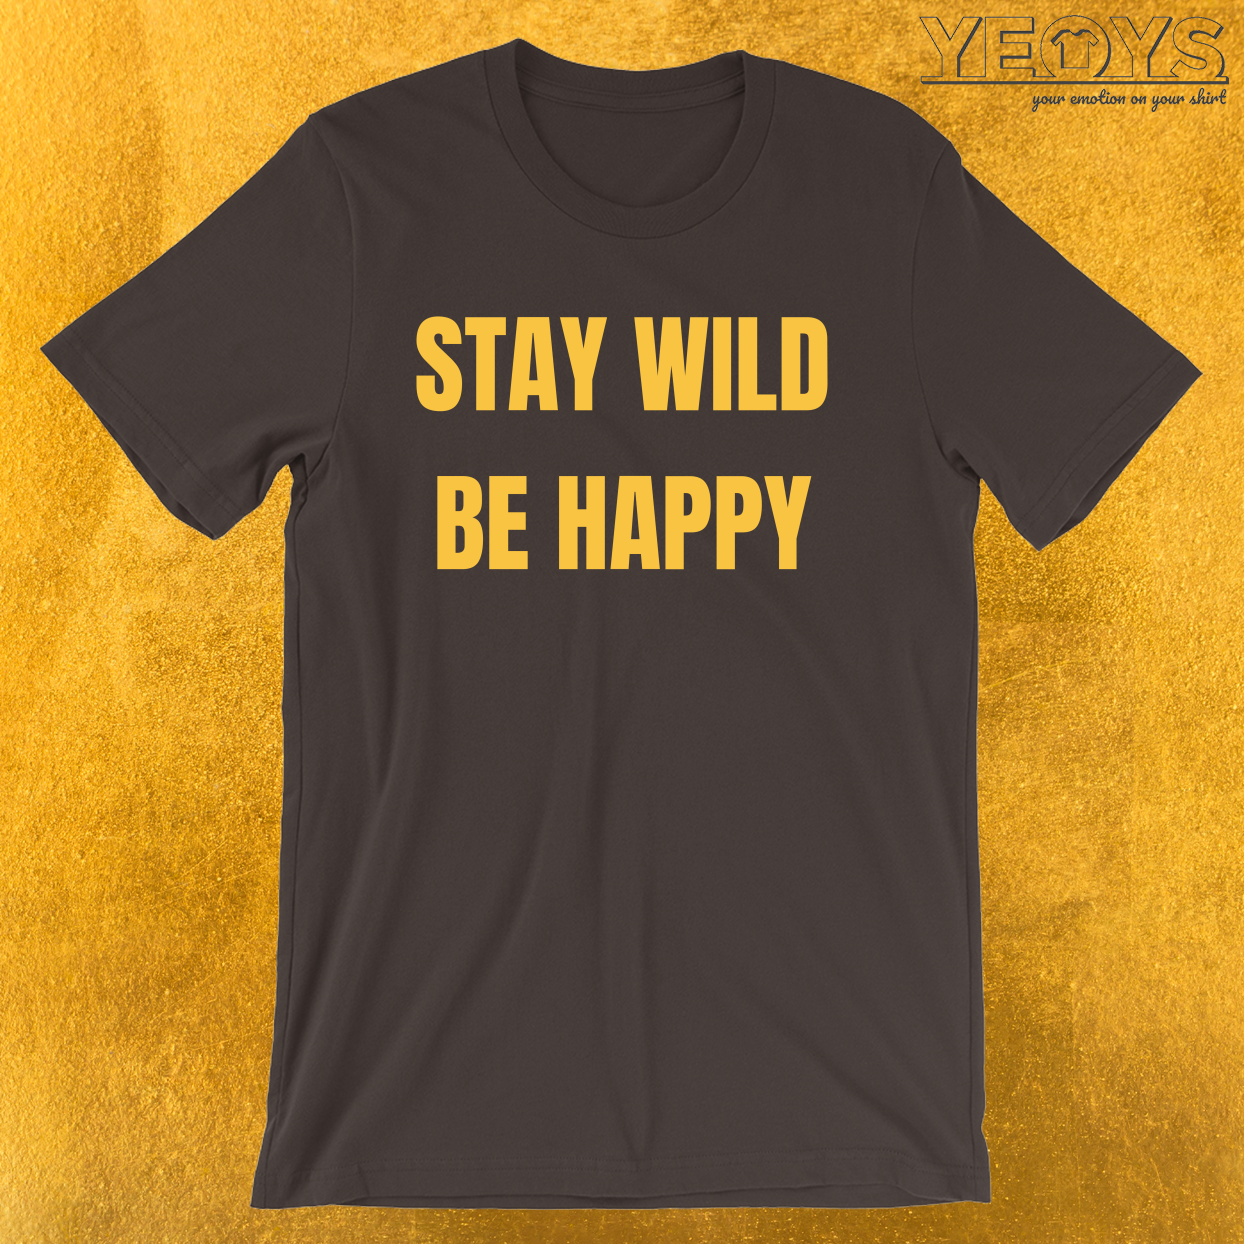 Stay Wild Be Happy – Funny Safari Explorer Tee